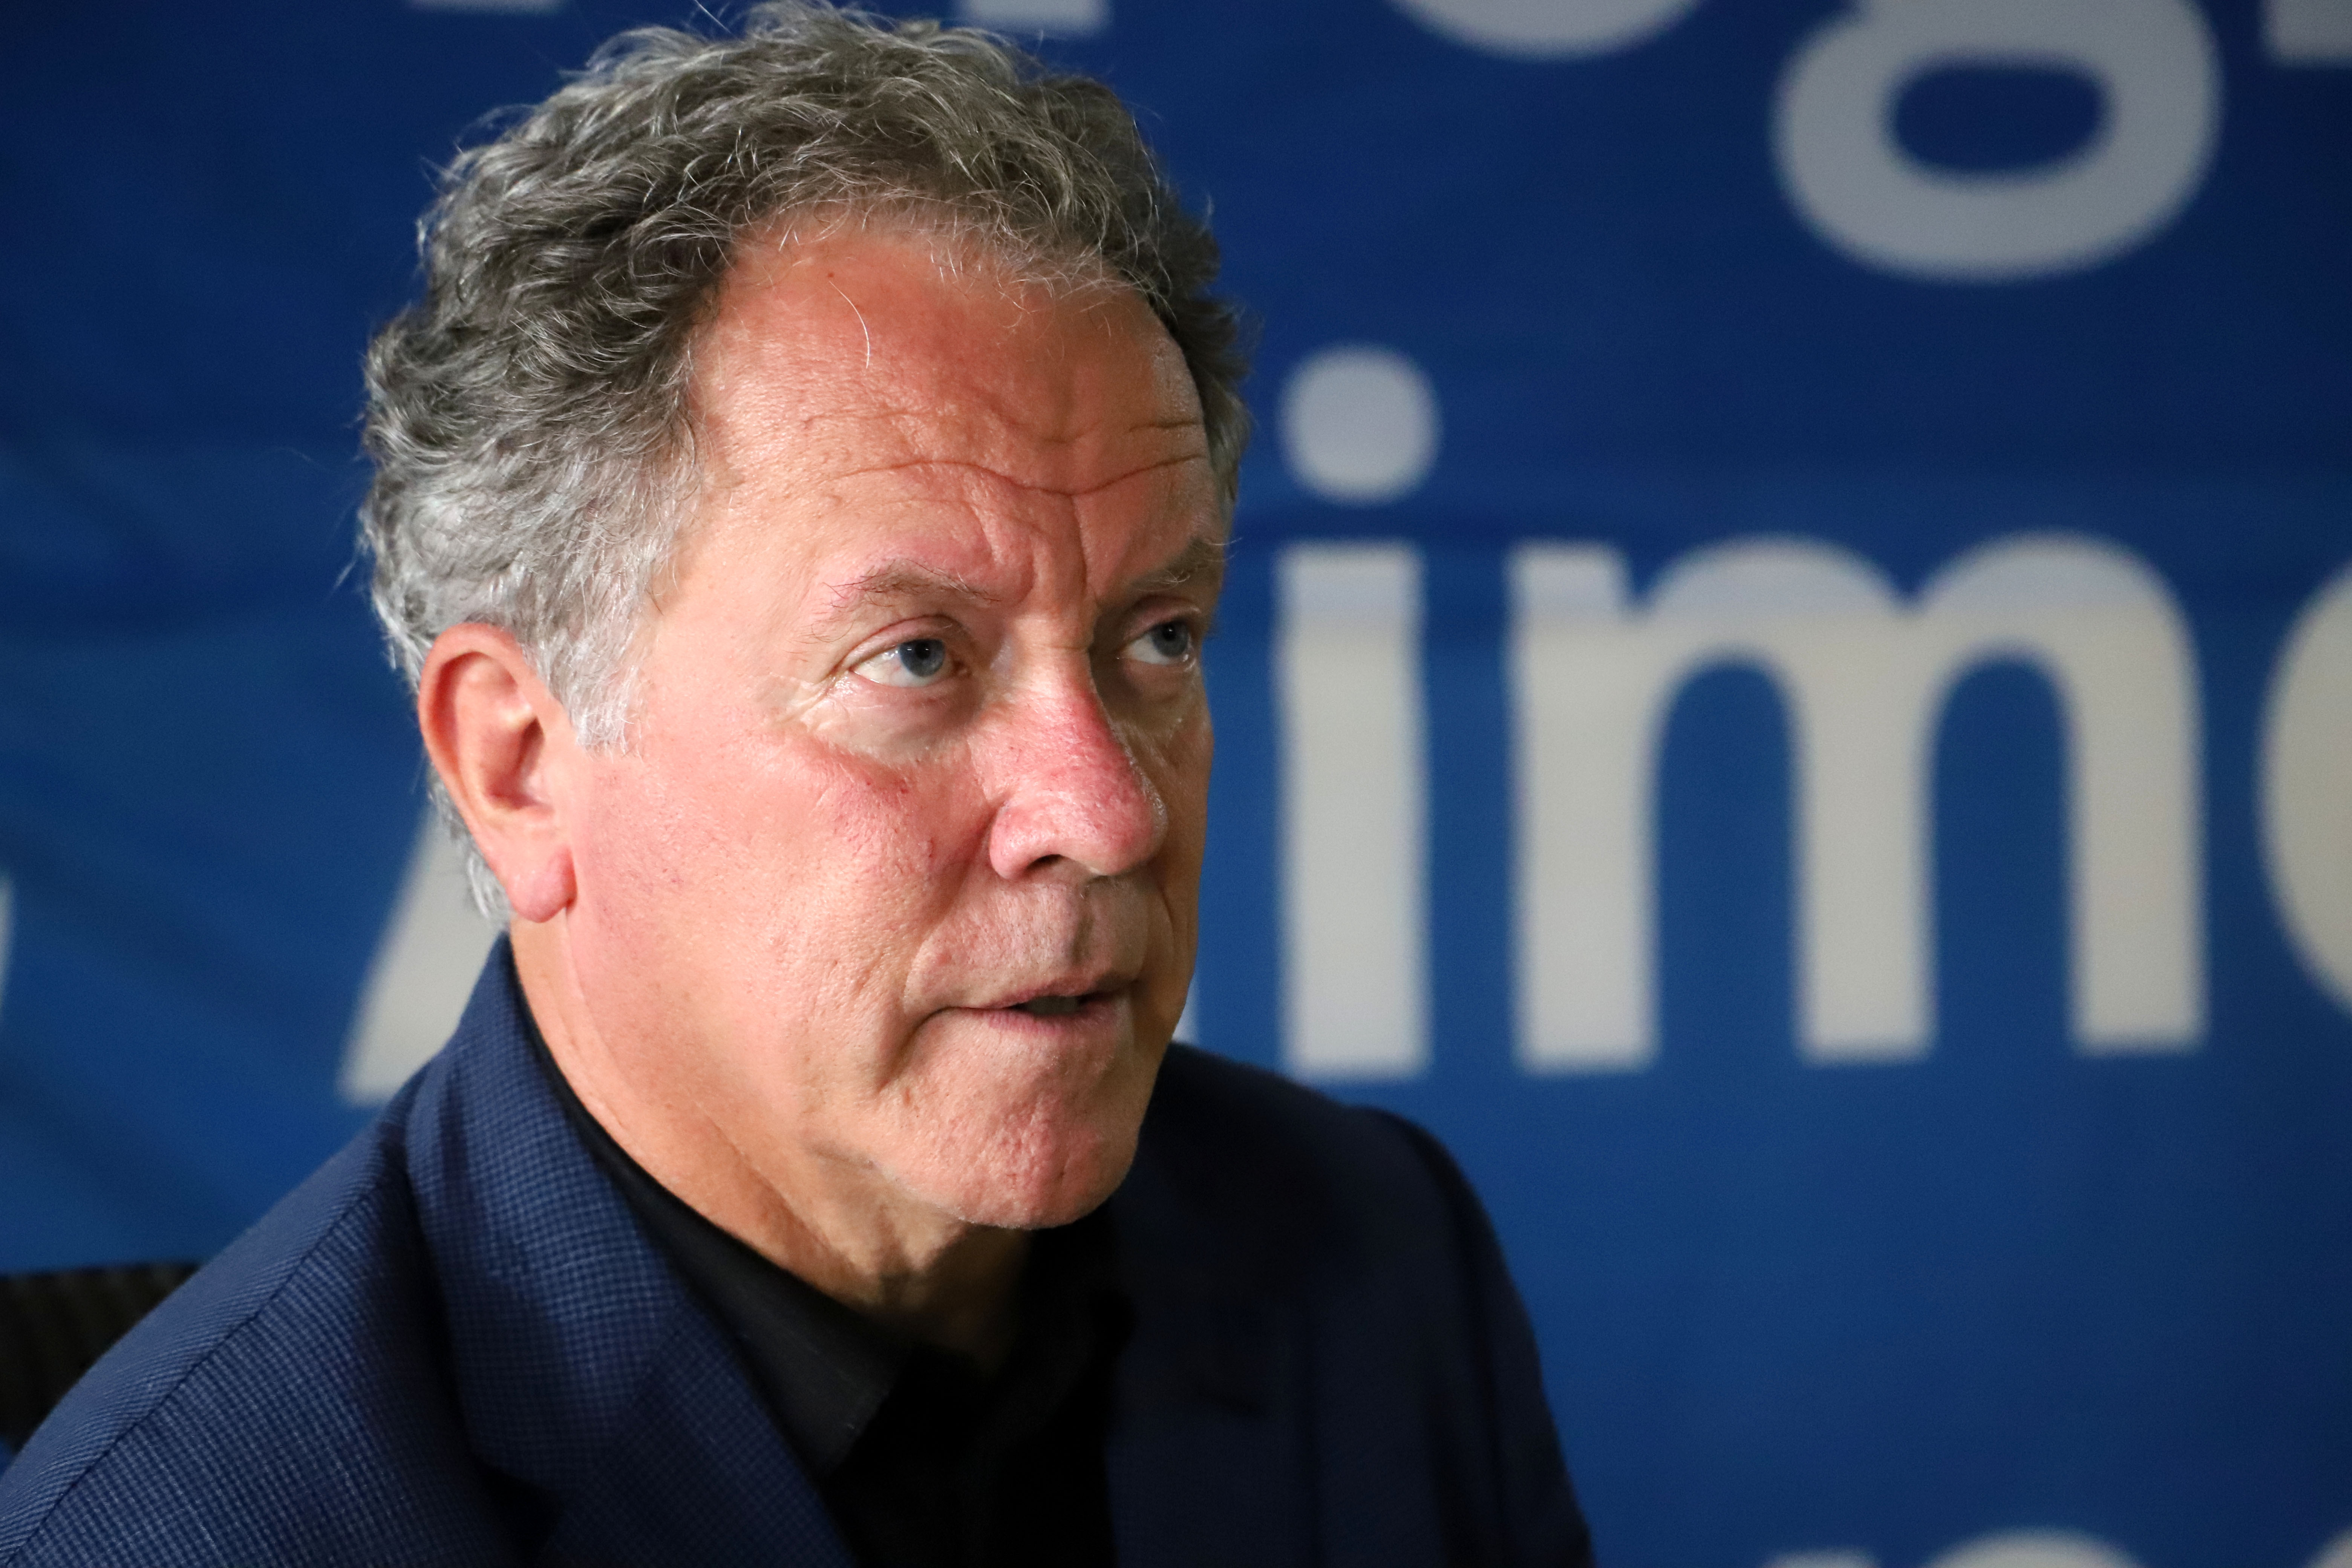 David Beasley, Executive Director of the World Food Programme (WFP), is seen at the WFP headquarters in Niamey on October 9, 2020.